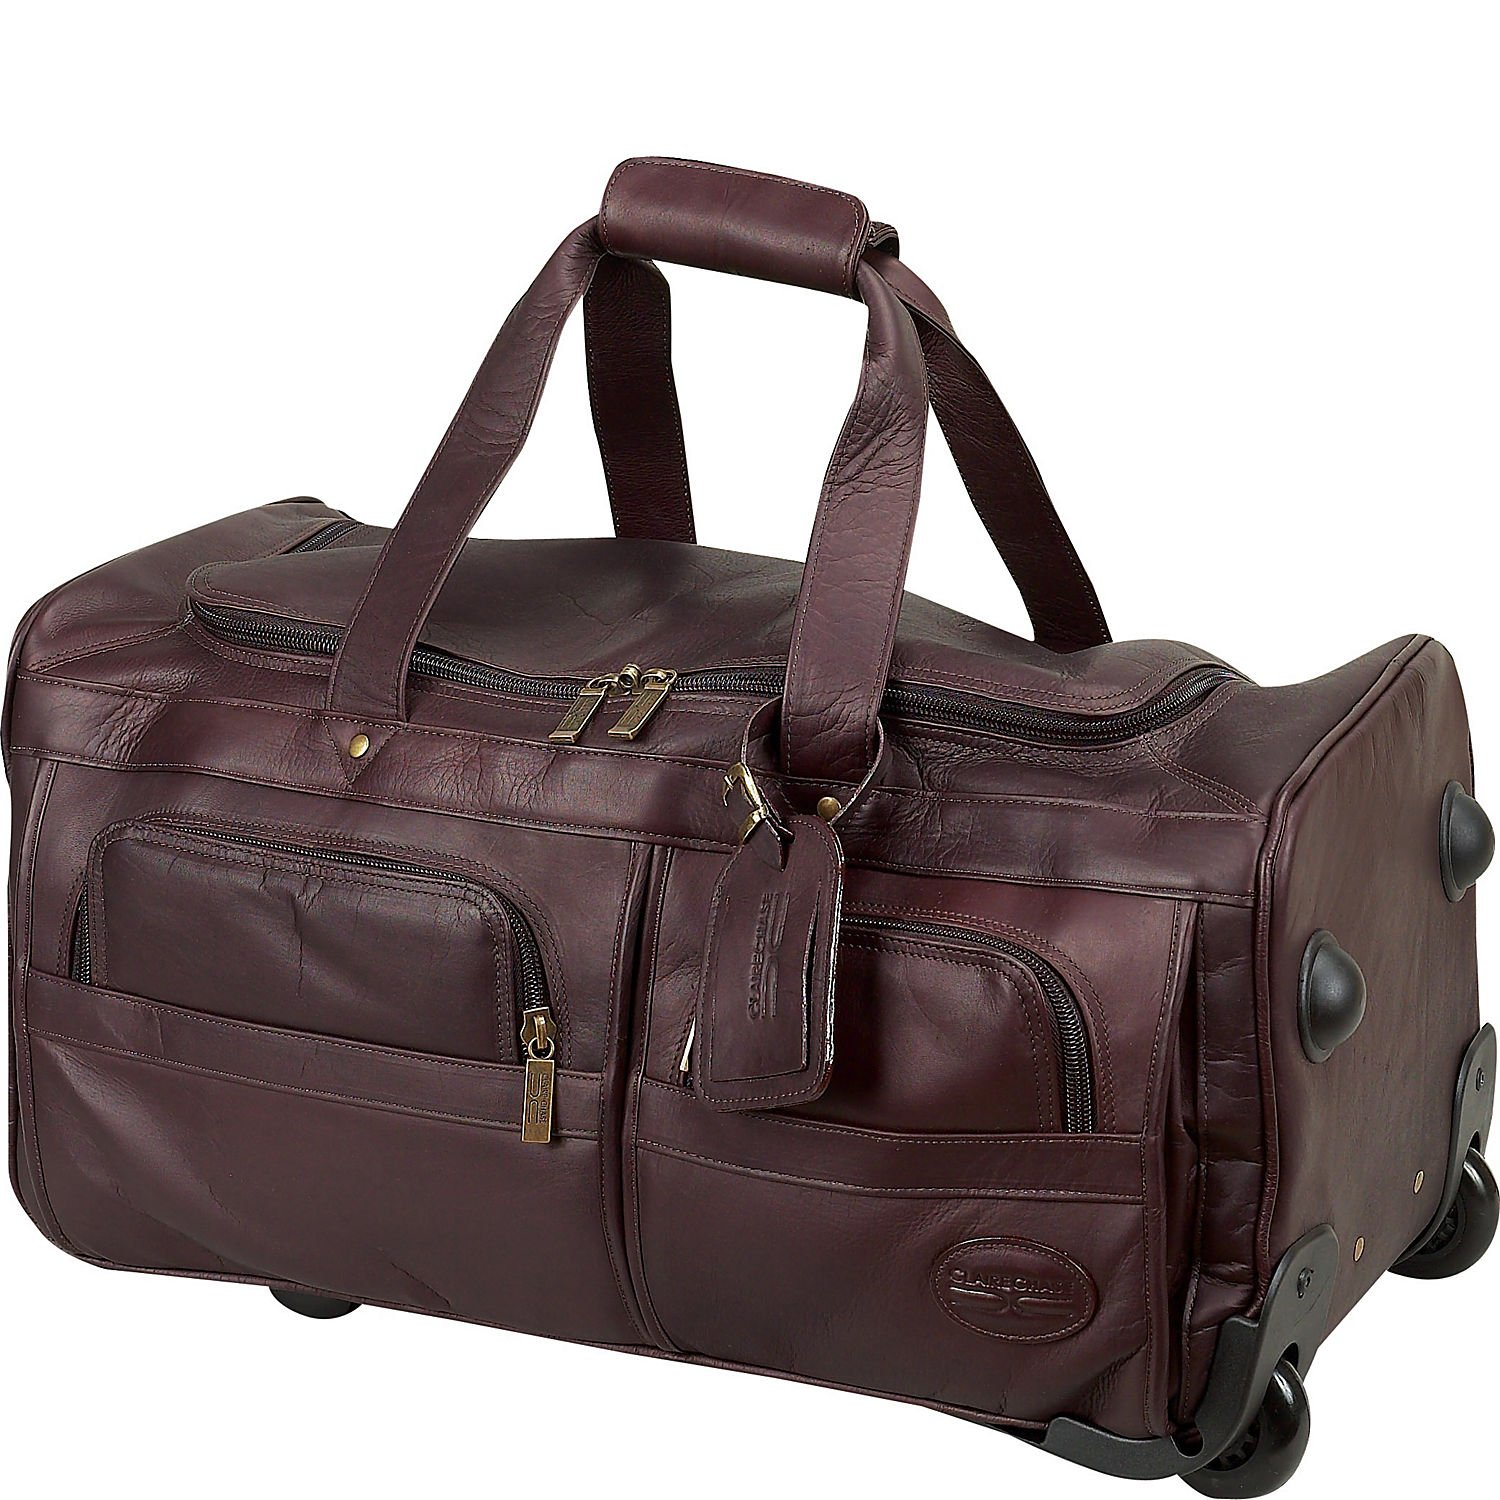 Claire Chase Leather Rolling Duffel Bag in Cafe by ClaireChase